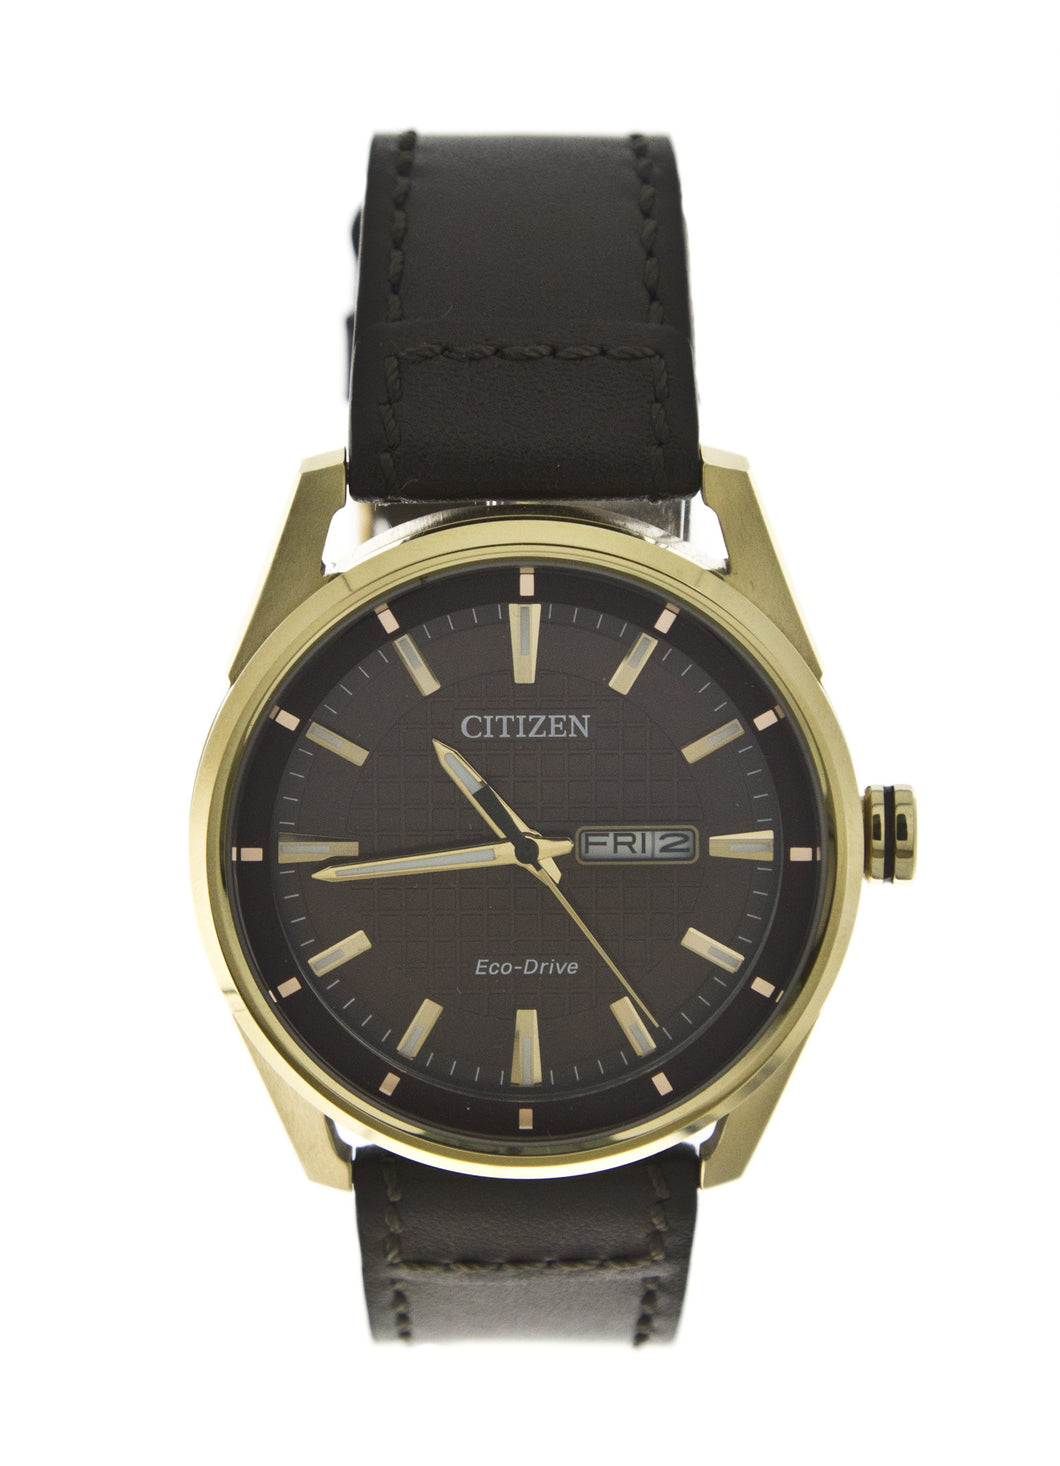 Citizen Eco-Drive Watch with Brown Face and Brown Leather Band Featuring Eco-Drive technology Ð powered by light, any light. Never needs a battery.